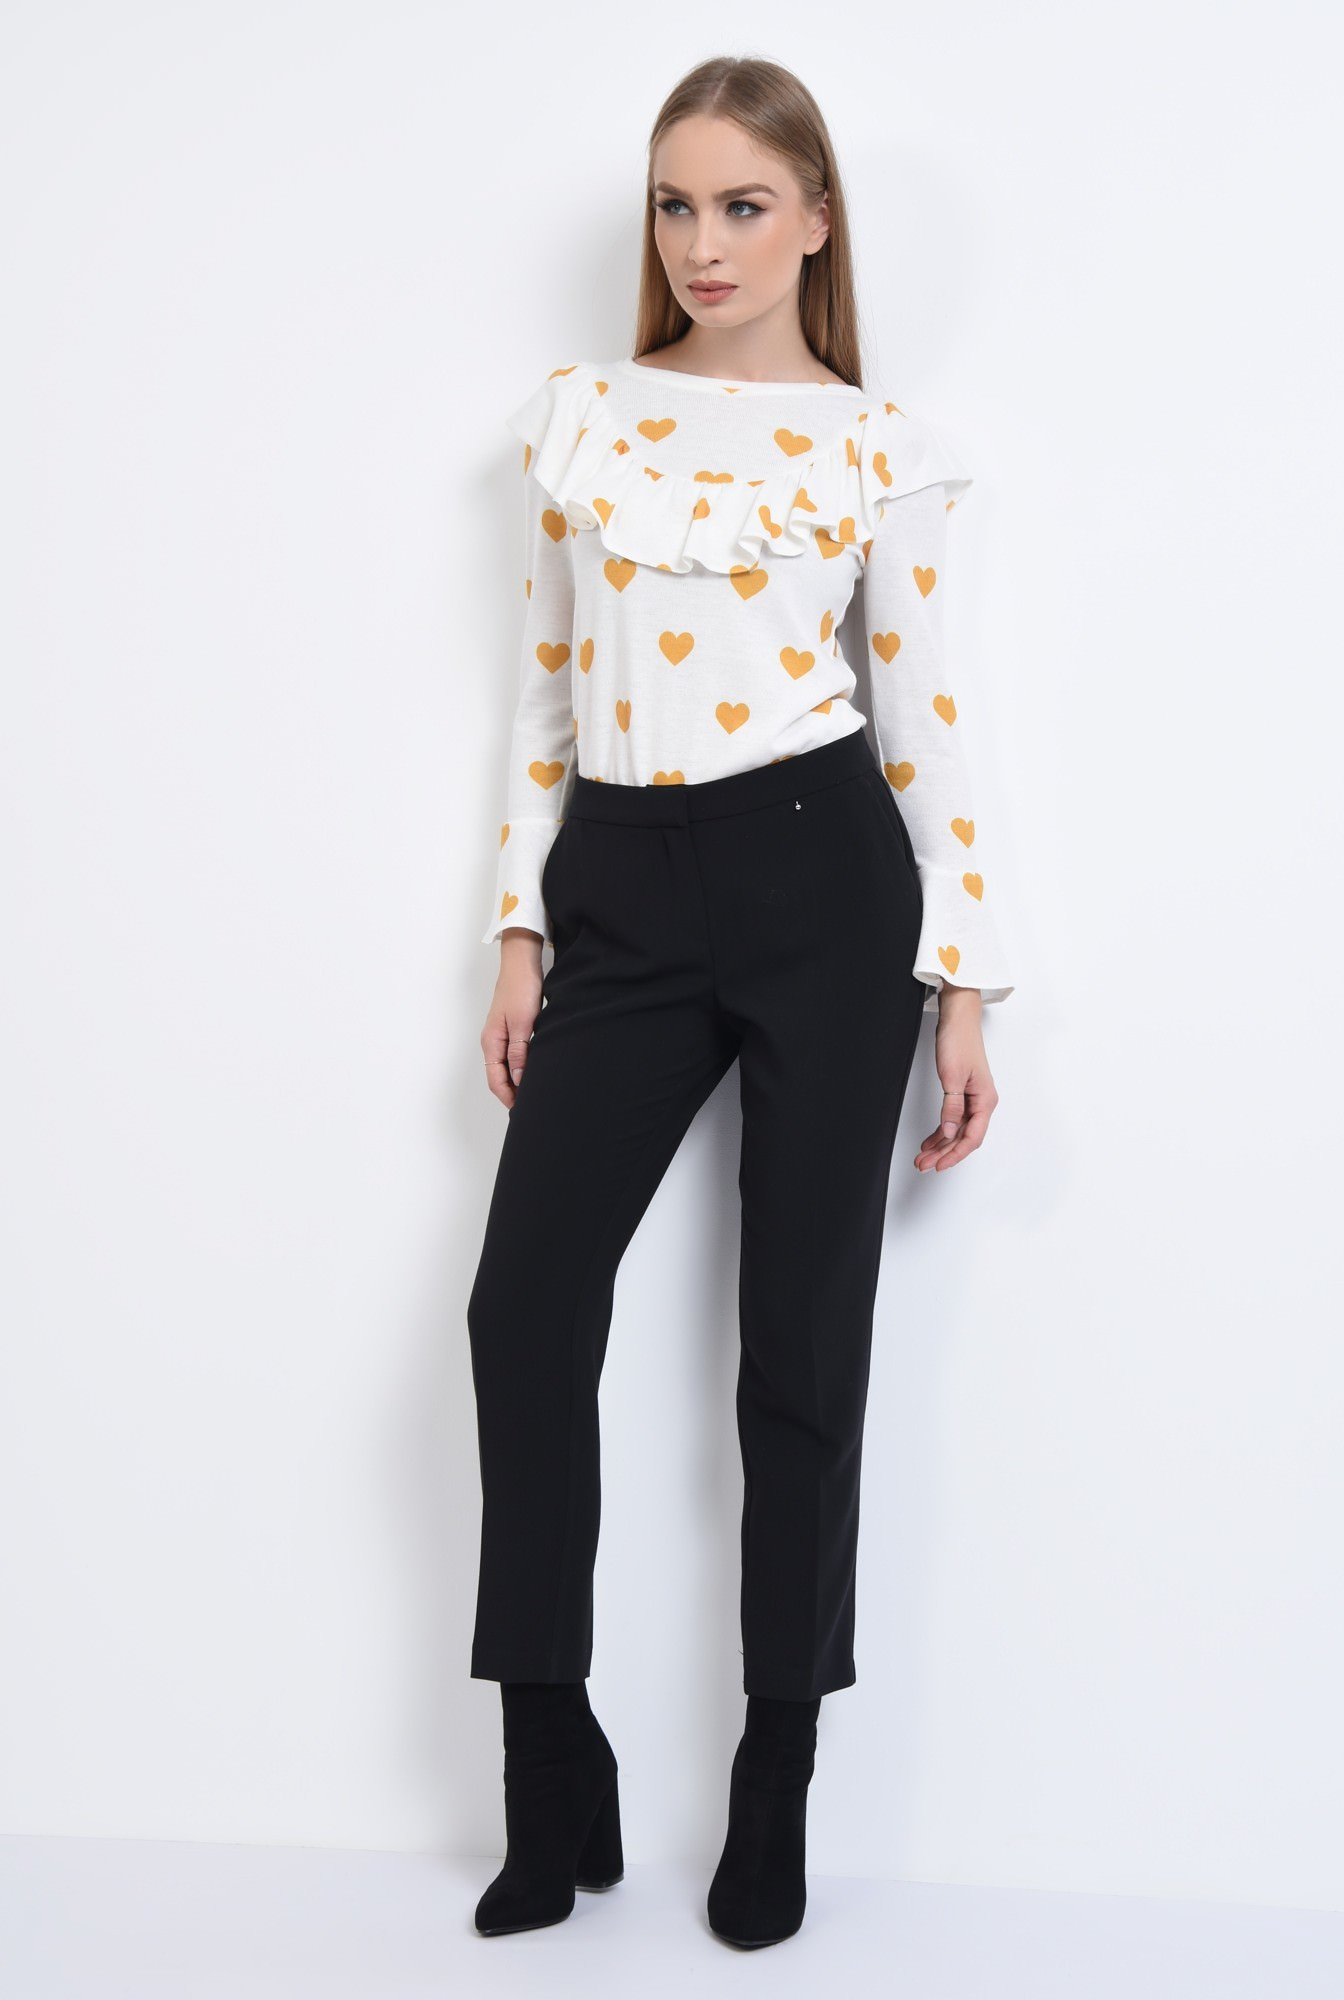 3 - PANTALON OFFICE PT 187-NEGRU